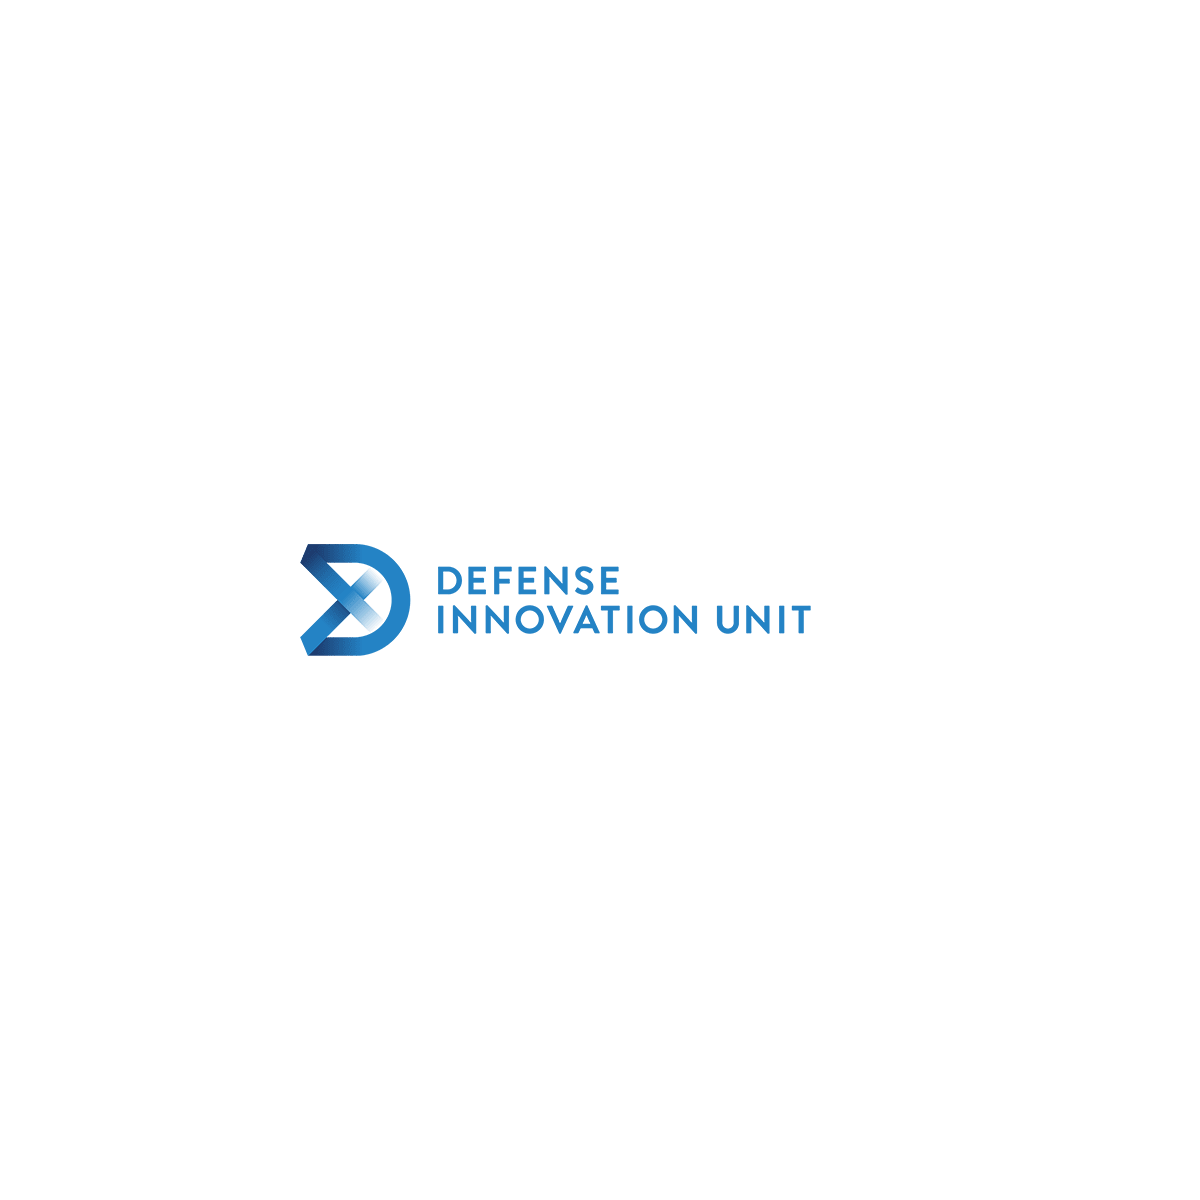 Defense Innovation Unit (DIU) Awards ModalAI Contract to Develop Next-Generation UAS (Drone) Technology